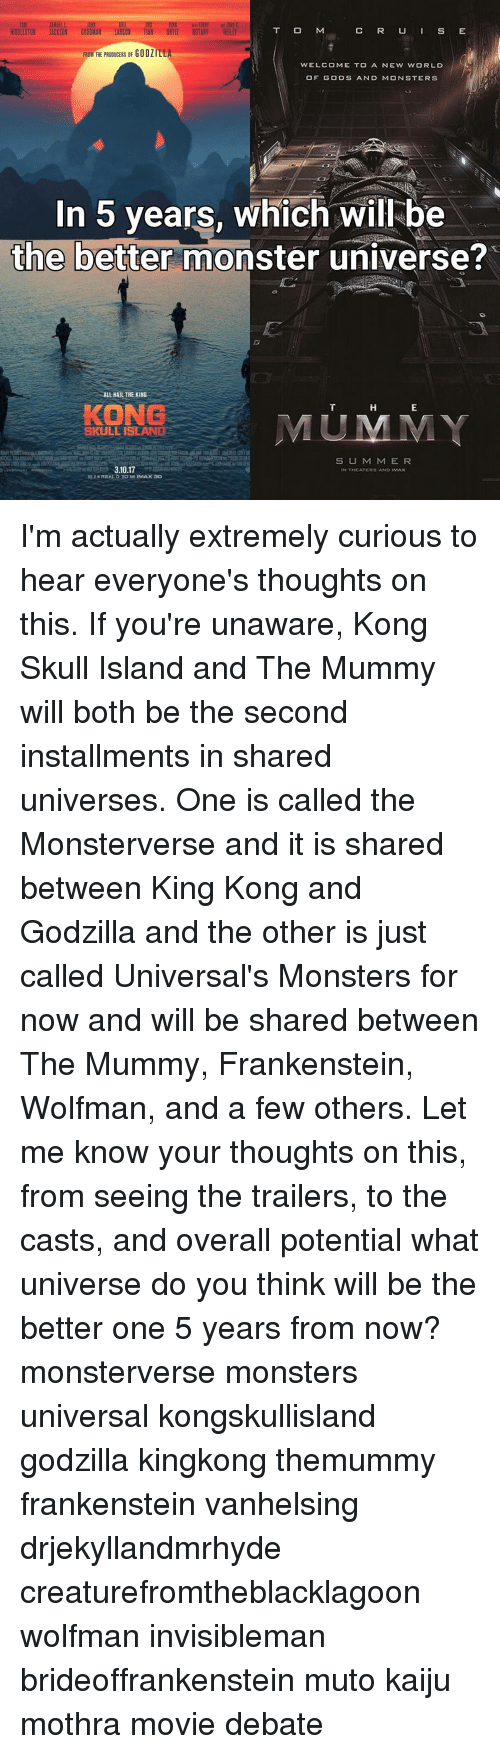 monster university: ERIE INS  T O M  C R U S E  HIDDLESTON JACKSON  GOODMAN LARSON TIAN ORTIL NOTARY  REILLY  FROM THE PRODUCERS OF GODZILLA  WELCOME TO A NEW WORLD  OF GODS AND MONSTERS  In 5 years, which will be  the better monster universe?  ALL HAIL THE KING  KONG  SKULL ISLANE  S U M M E R  3.10.17  N THEATERS AND IMAX  N REAL D 3D IMAX 3D I'm actually extremely curious to hear everyone's thoughts on this. If you're unaware, Kong Skull Island and The Mummy will both be the second installments in shared universes. One is called the Monsterverse and it is shared between King Kong and Godzilla and the other is just called Universal's Monsters for now and will be shared between The Mummy, Frankenstein, Wolfman, and a few others. Let me know your thoughts on this, from seeing the trailers, to the casts, and overall potential what universe do you think will be the better one 5 years from now? monsterverse monsters universal kongskullisland godzilla kingkong themummy frankenstein vanhelsing drjekyllandmrhyde creaturefromtheblacklagoon wolfman invisibleman brideoffrankenstein muto kaiju mothra movie debate